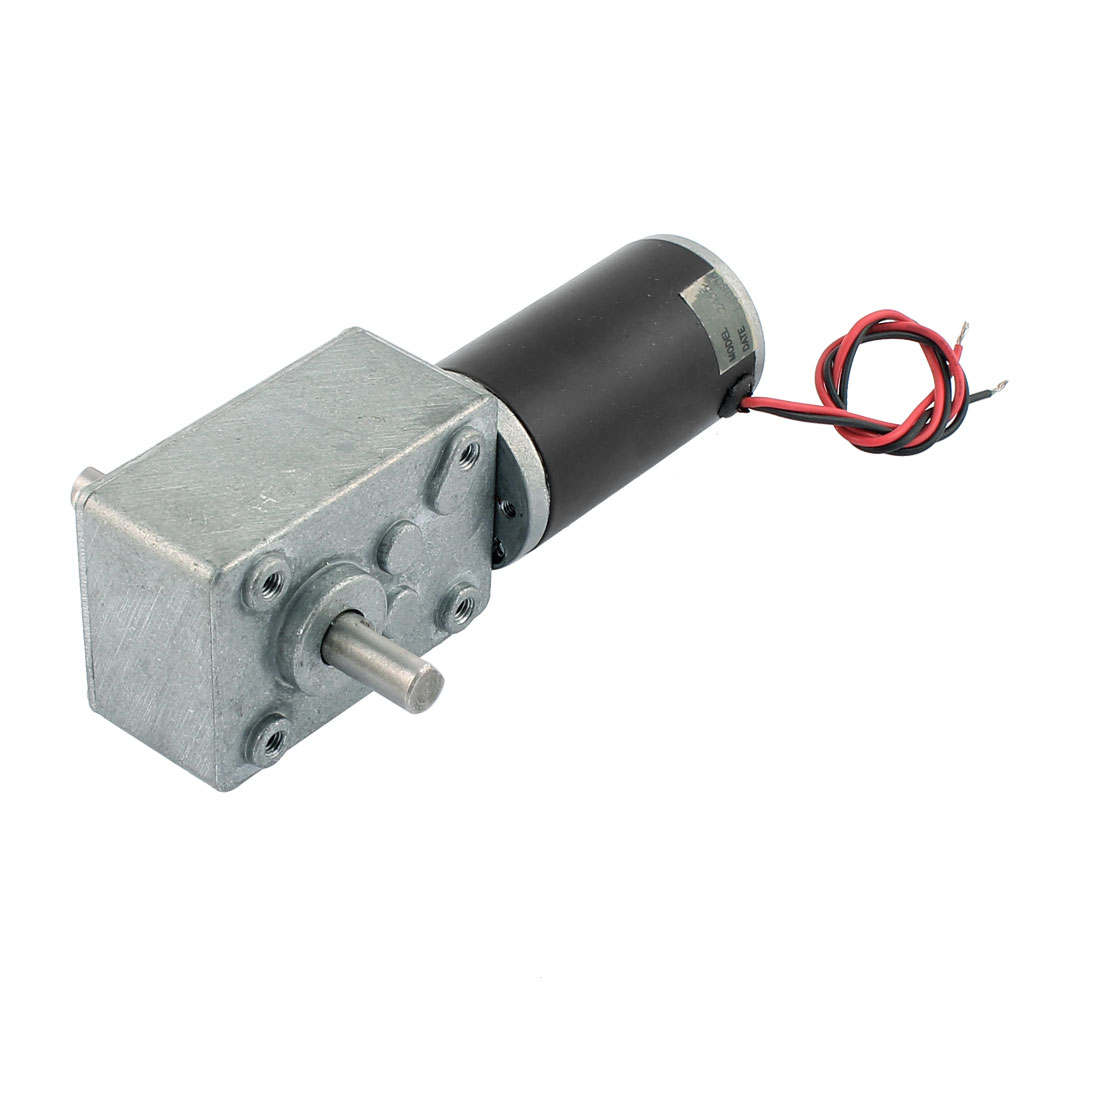 DC 24V 5500/110 RPM Electric Power Rotary Speed Reduce Worm Geared Box Motor